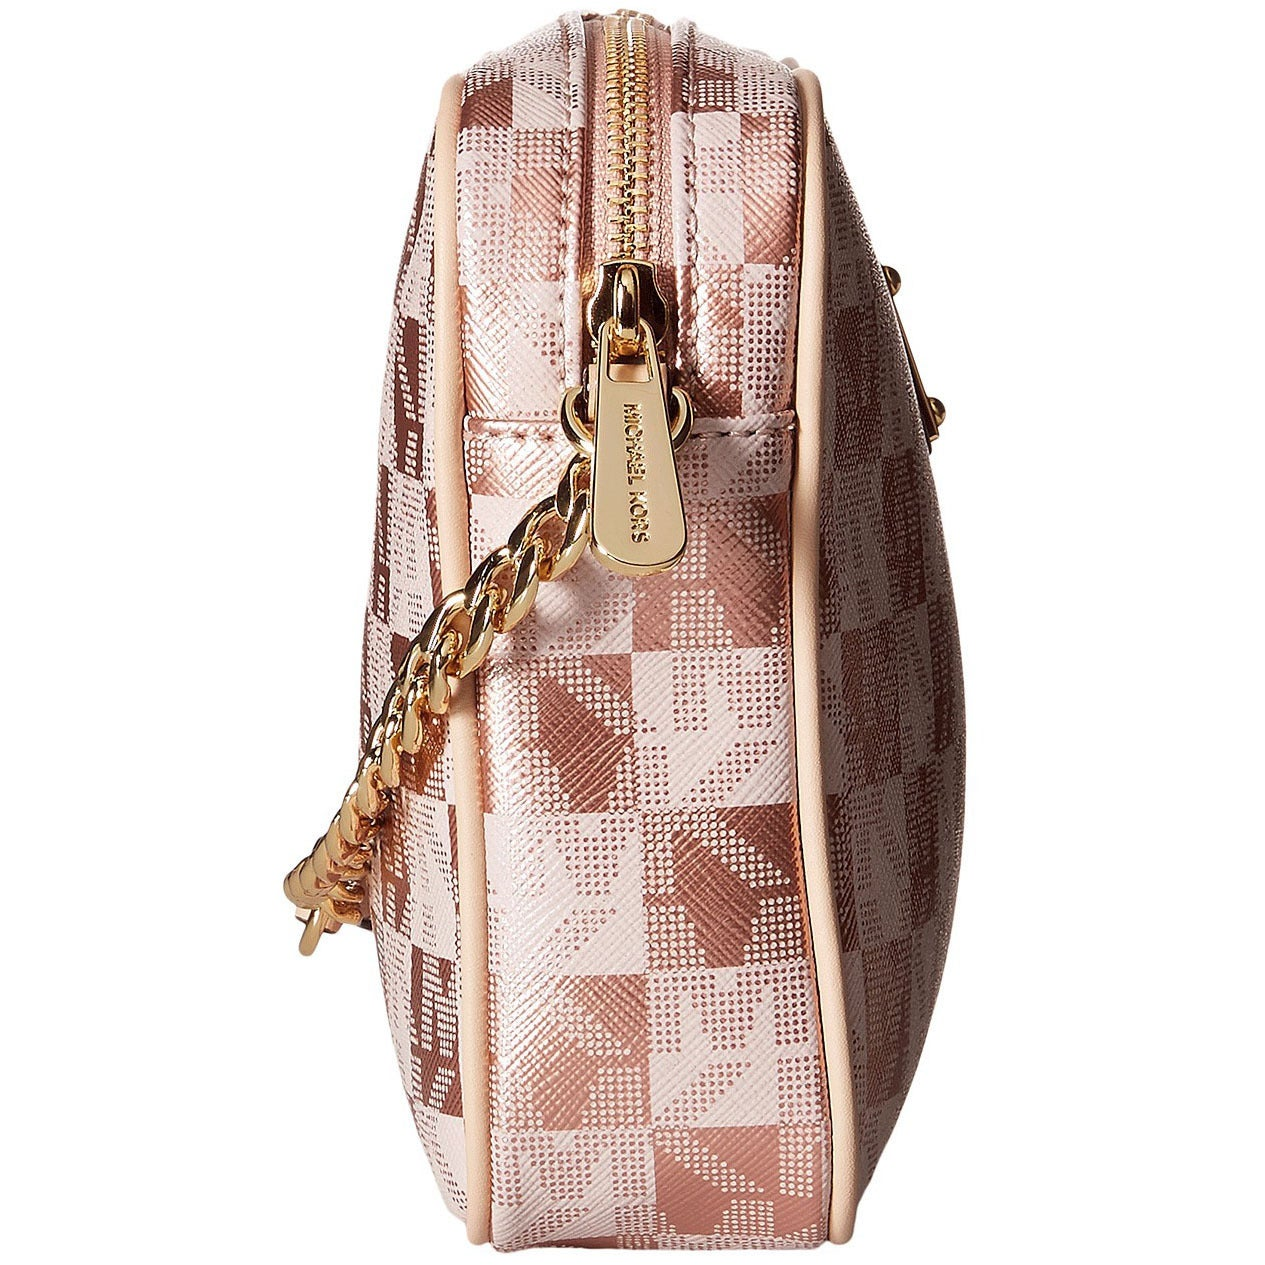 38613bce08f8 Shop Michael Kors Jet Set Large East West Checkerboard Rose Gold Crossbody  - Free Shipping Today - Overstock - 10888555